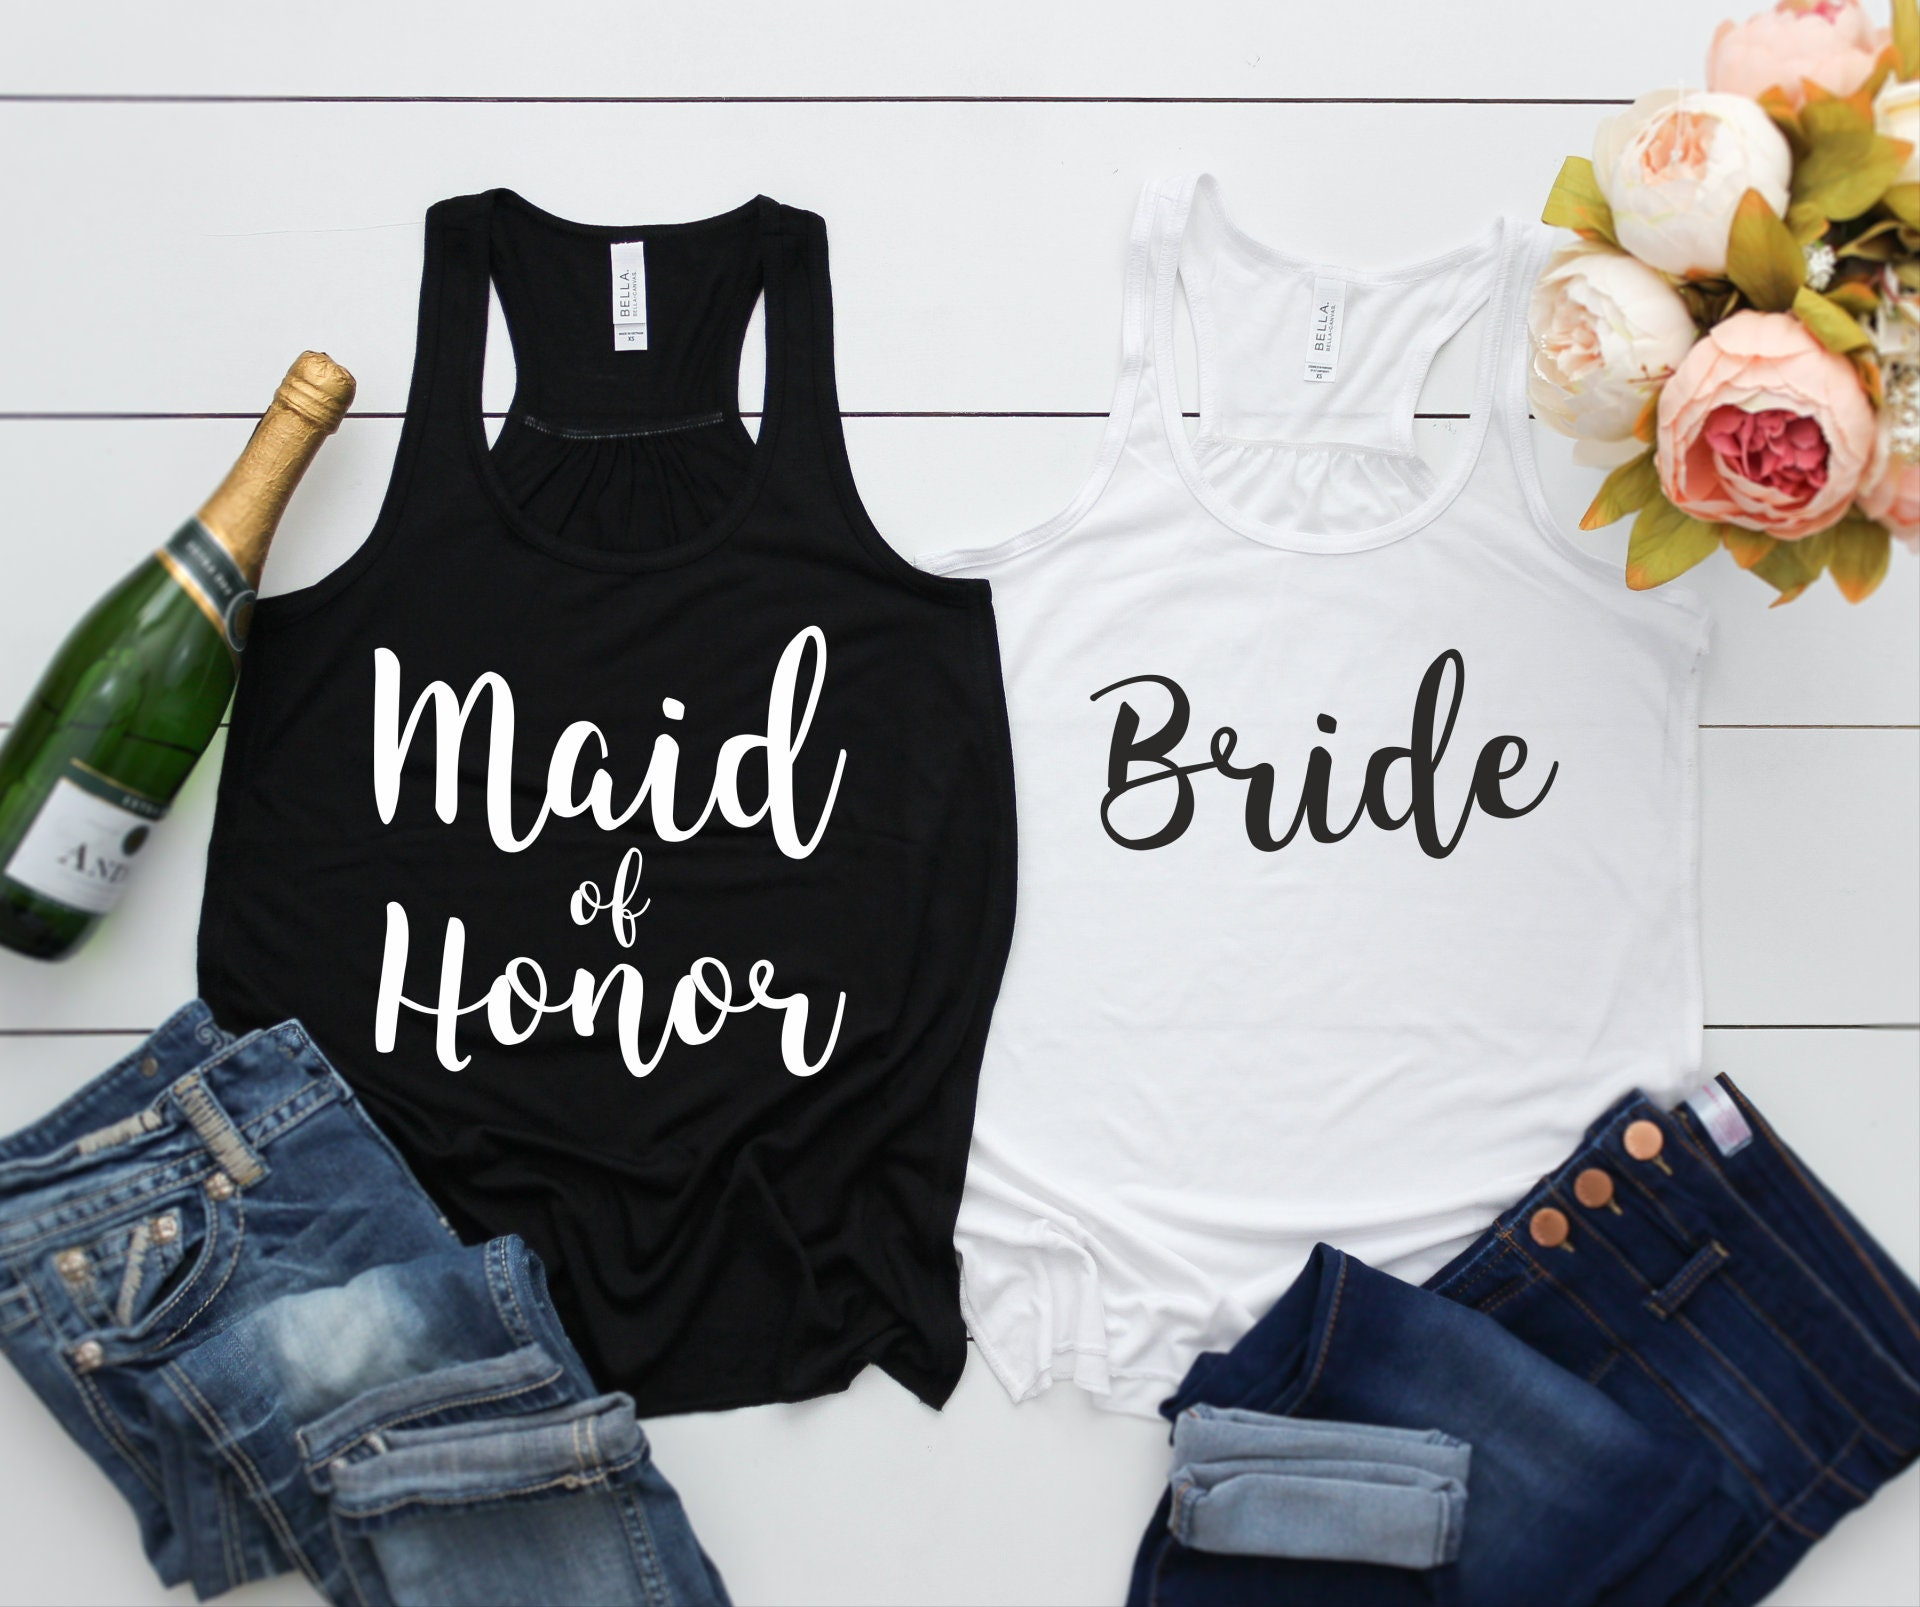 Bridesmaid Tank Tops for Bachelorette Party, Loose and Flowy